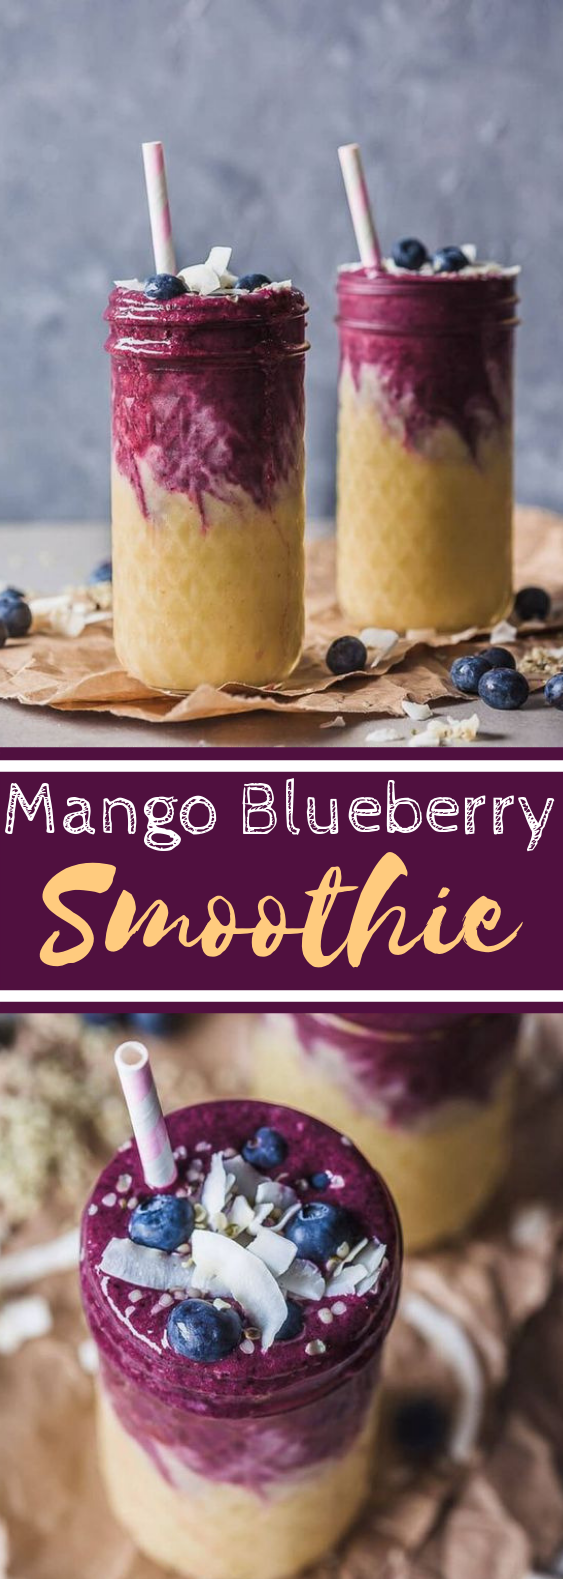 Mango Blueberry Smoothie #smoothies #breakfast